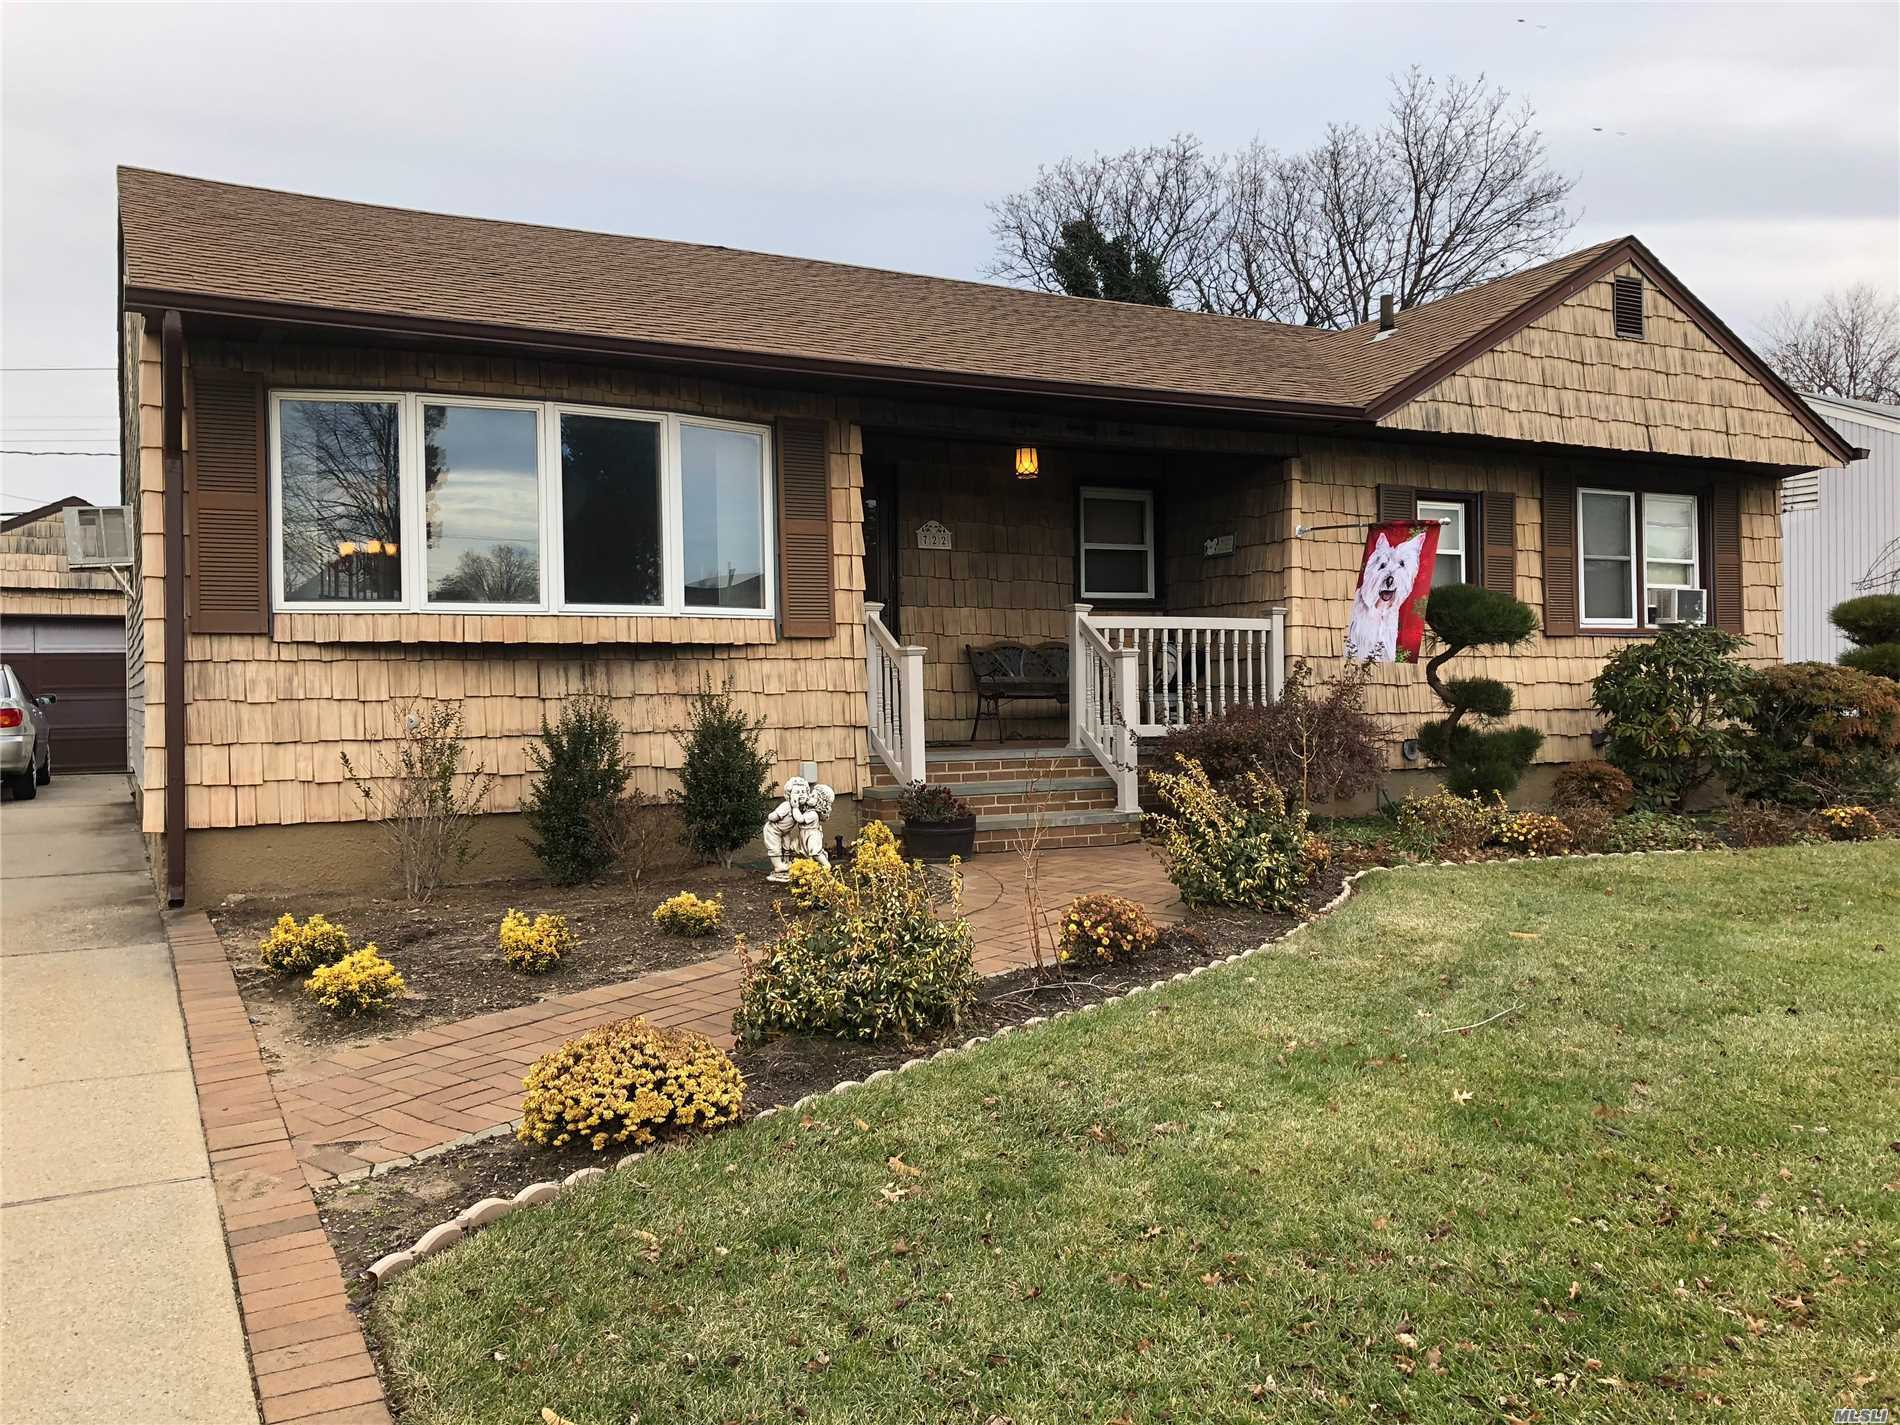 3 Bedroom 2 Bath (One In Master) Ranch In The Dogwood Section Of Franklin Square. Features Include Inviting Front Porch, Hardwood Floors, Eik, Lr/Dr, Oversized Garage And Private Fenced Yard.